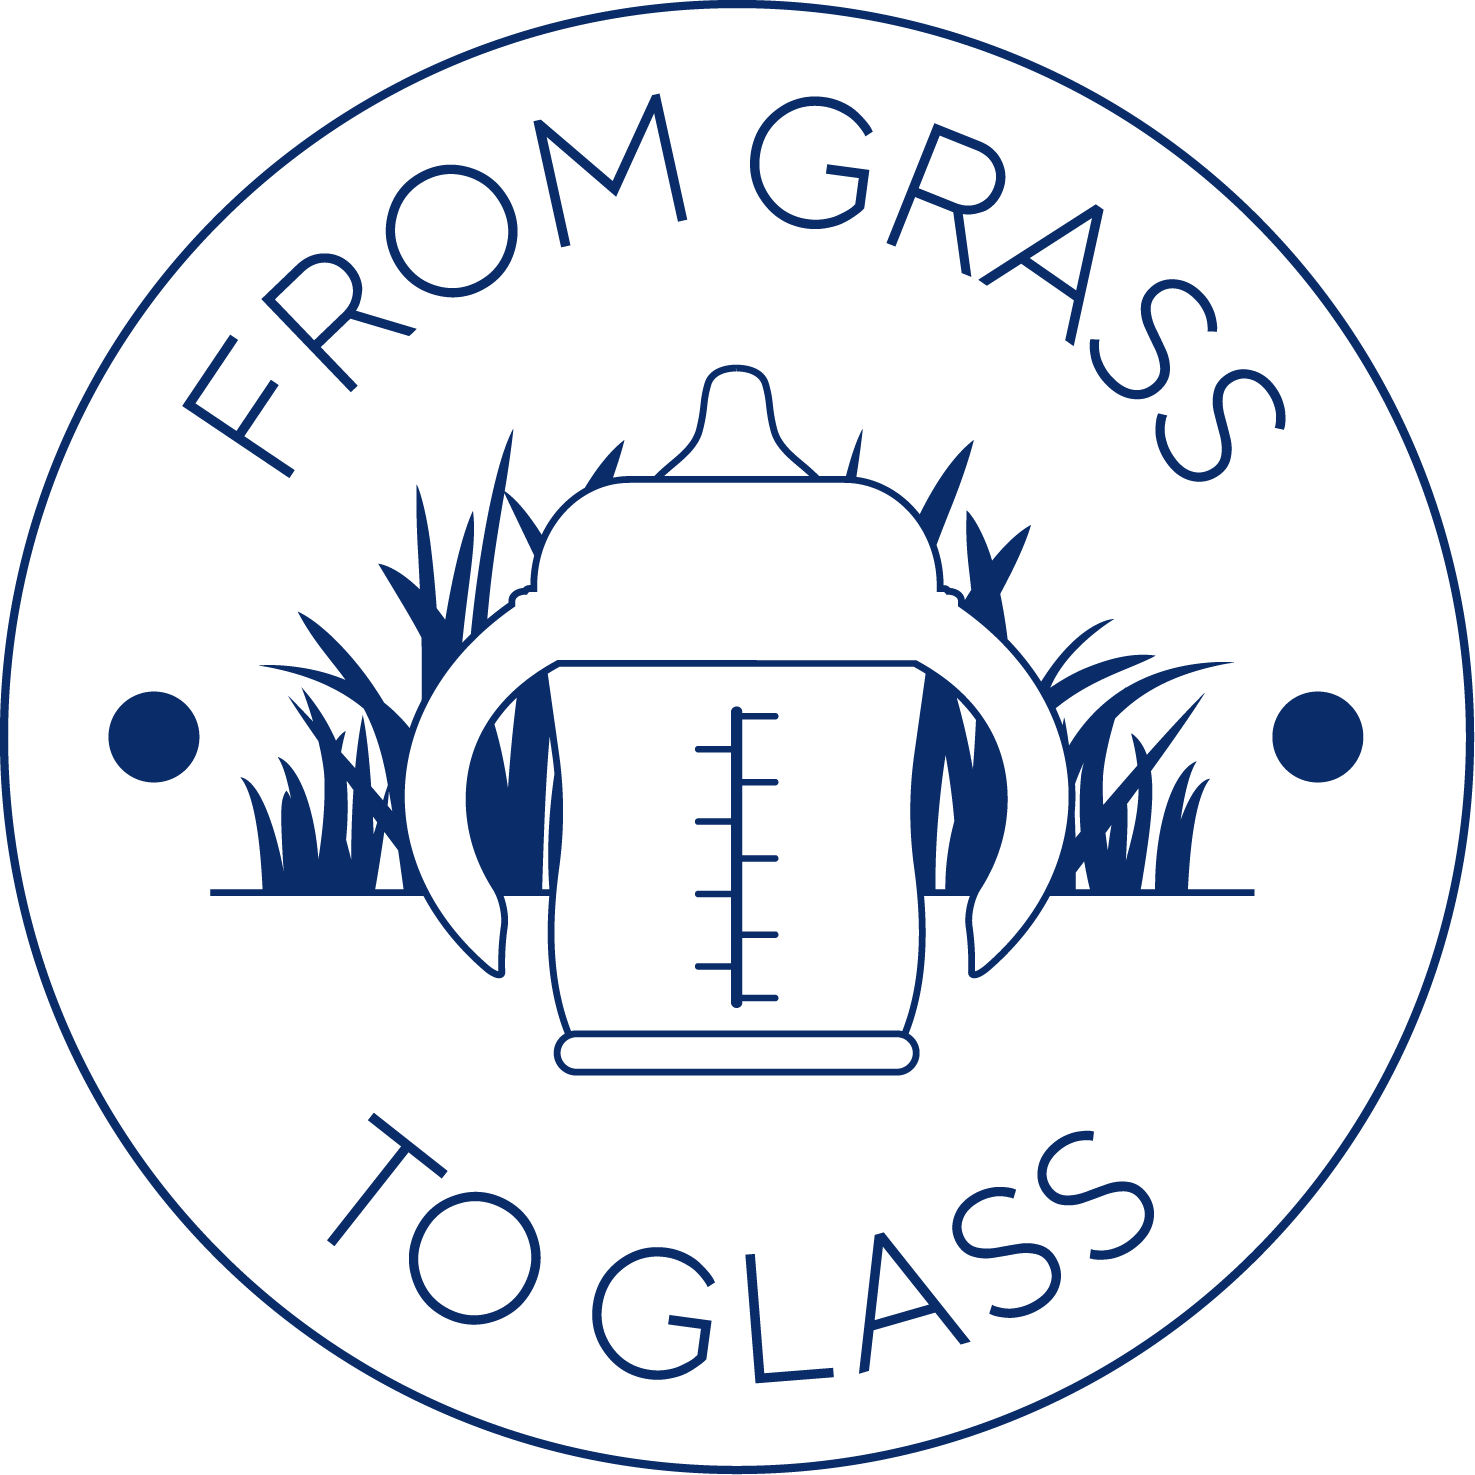 Grass to glass